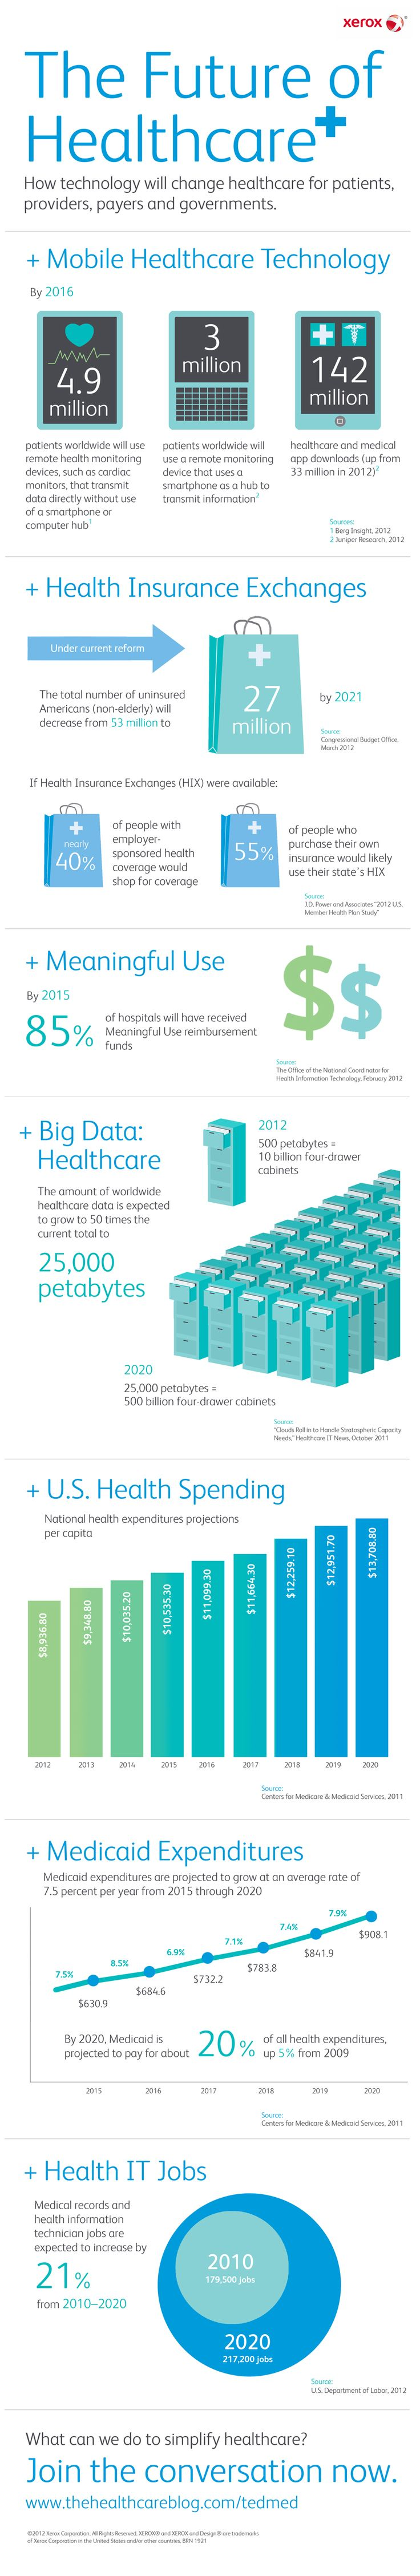 The Future of Healthcare What can we do to simplify healthcare? How could the rise of mobile technology and health insurance exchanges make an impact? This infographic from Xerox takes a peek at where we're headed and what the healthcare industry could look like when we get there or you could look into taking better care of yourself by looking at http://fitness-4gswcqzf.thetruthfulreviews.com